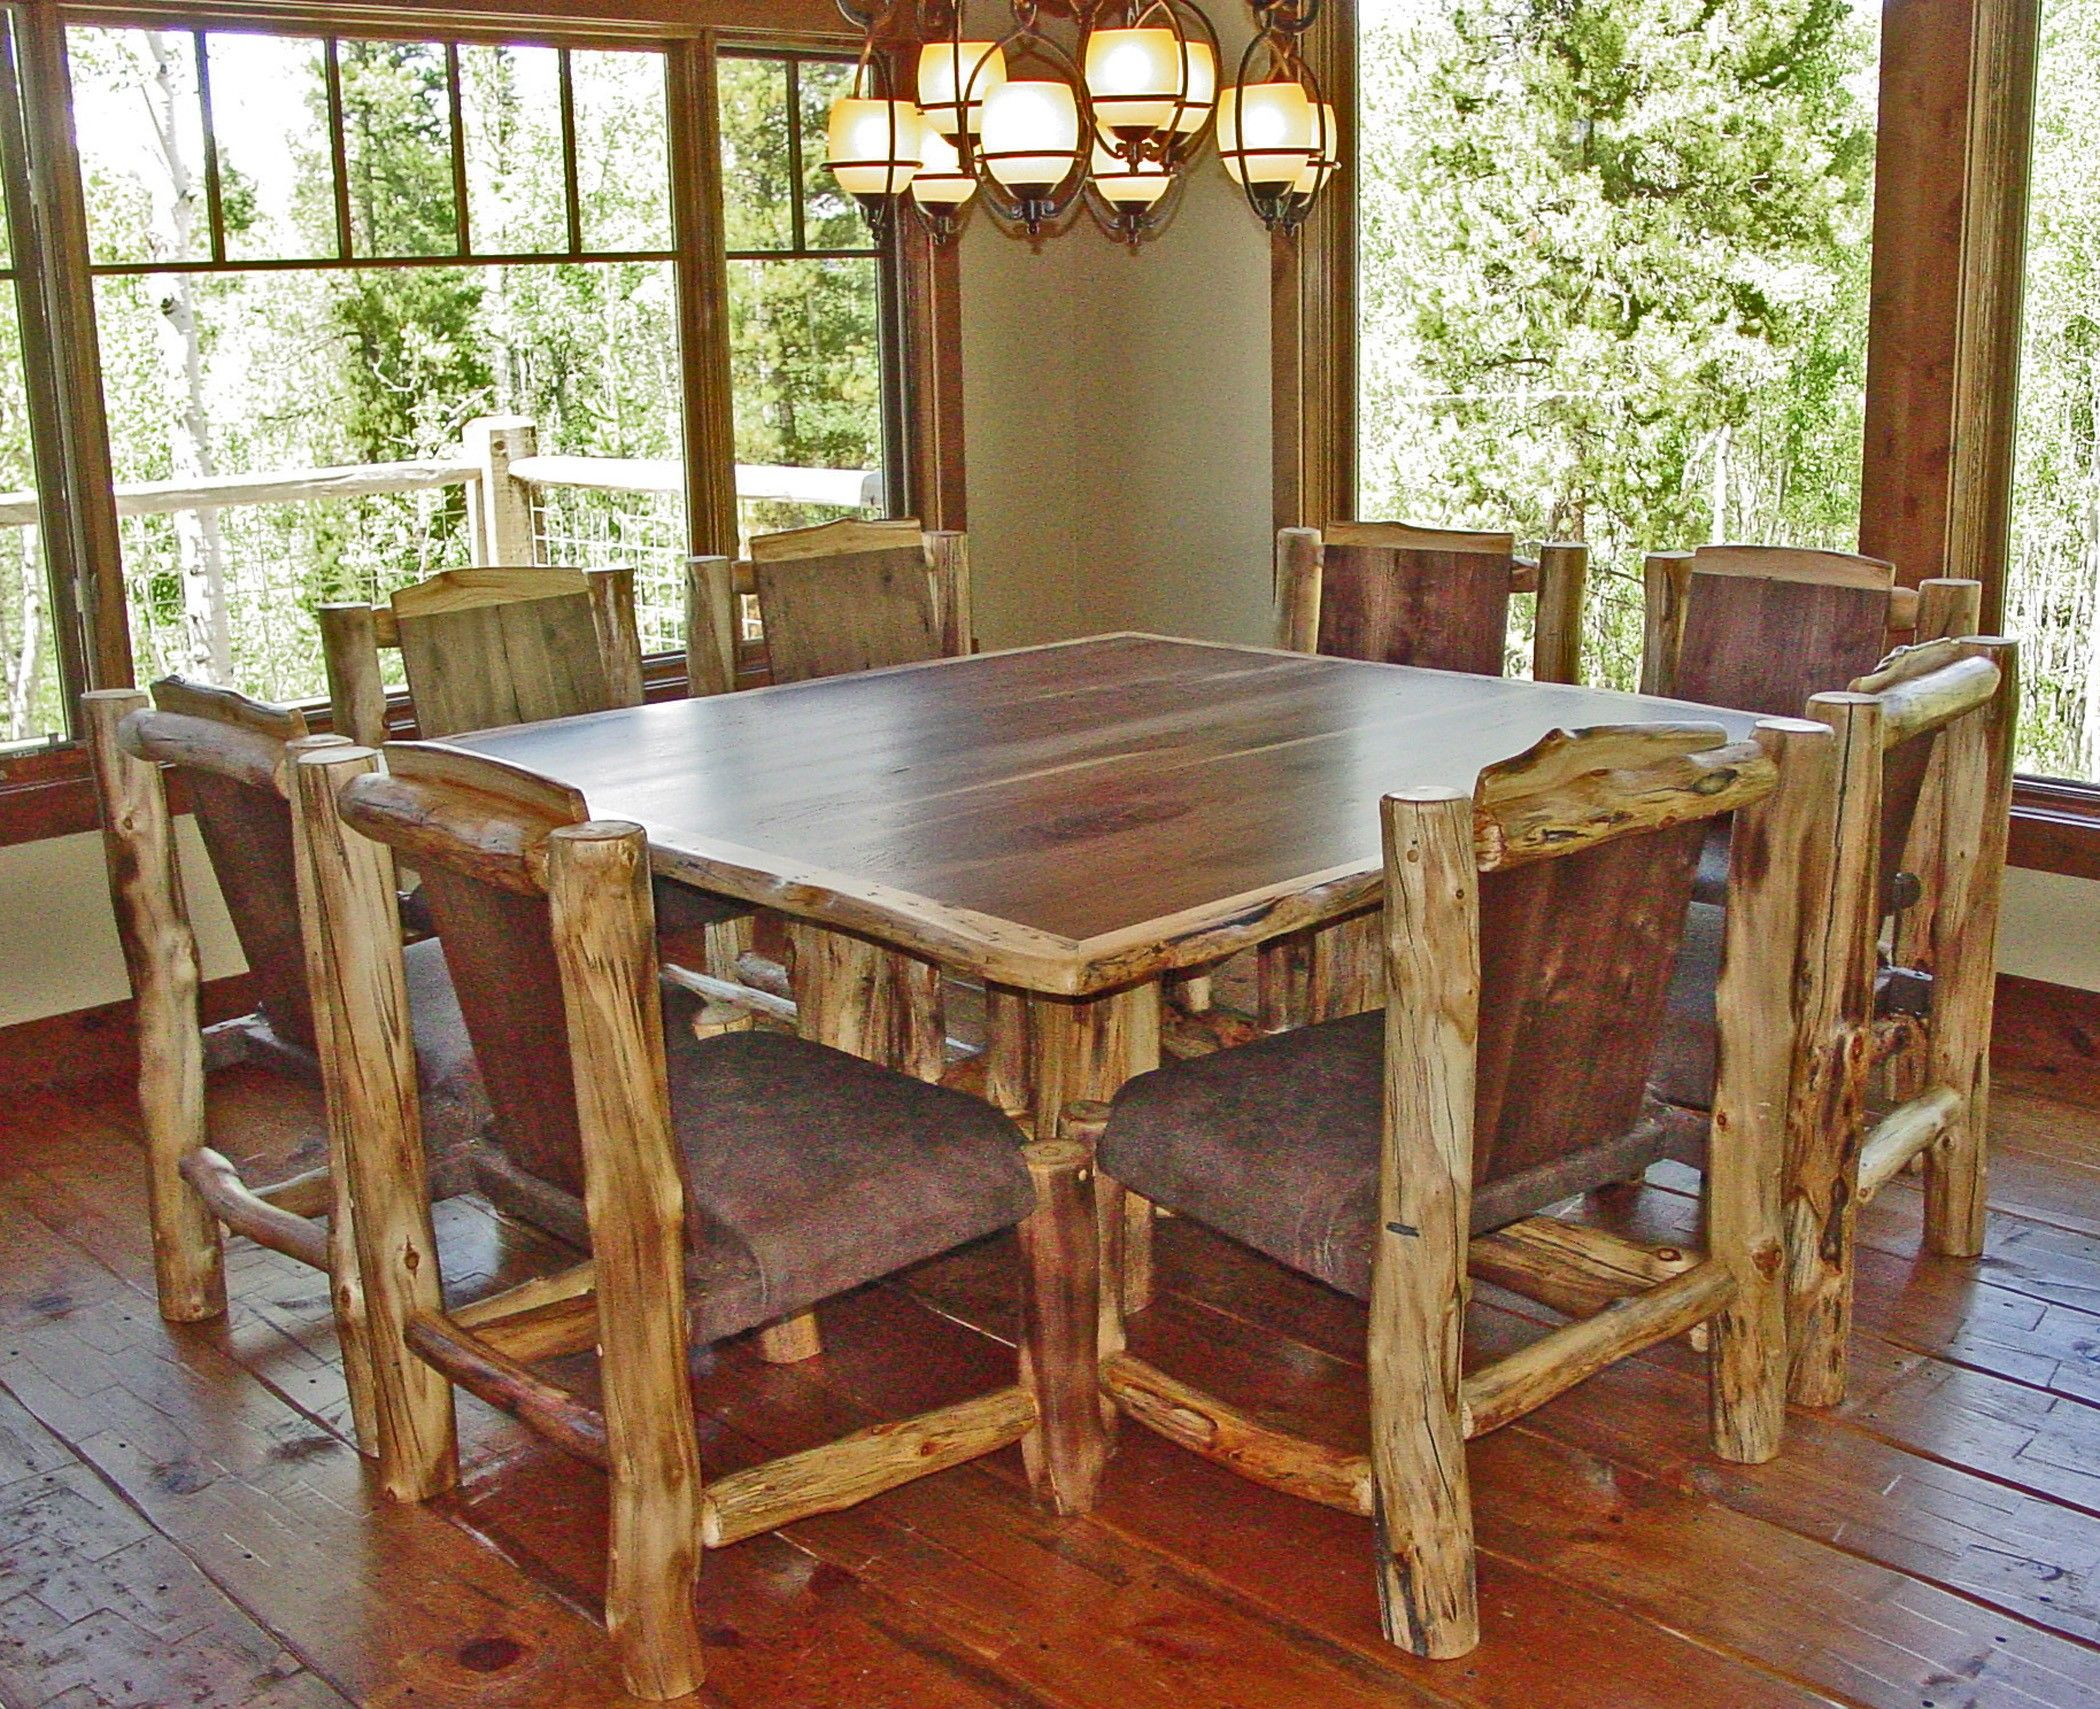 Dining Room Oval Rustic Dining Room Table Old Rustic Dining Room Delectable Pine Dining Room Table And Chairs Decorating Inspiration